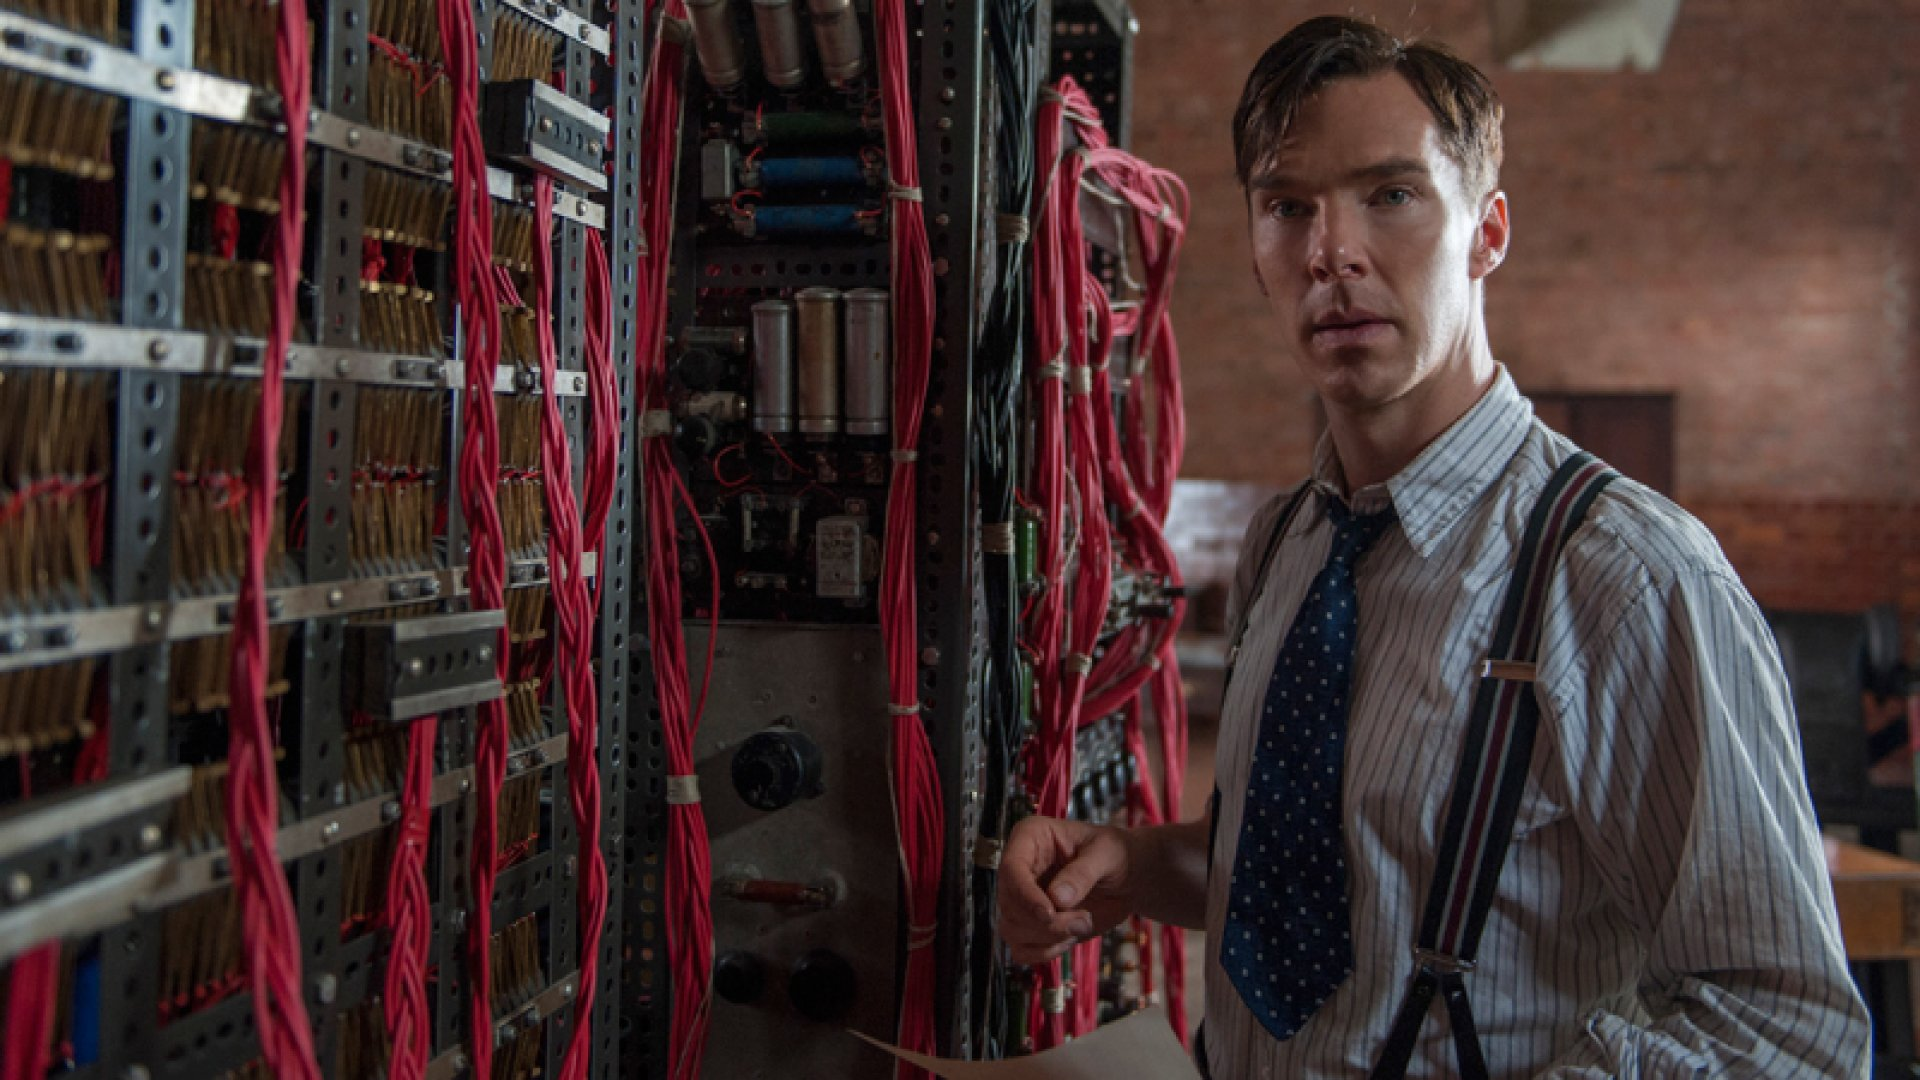 'The Imitation Game': How the World's First Computer Scientist Helped Defeat the Nazis